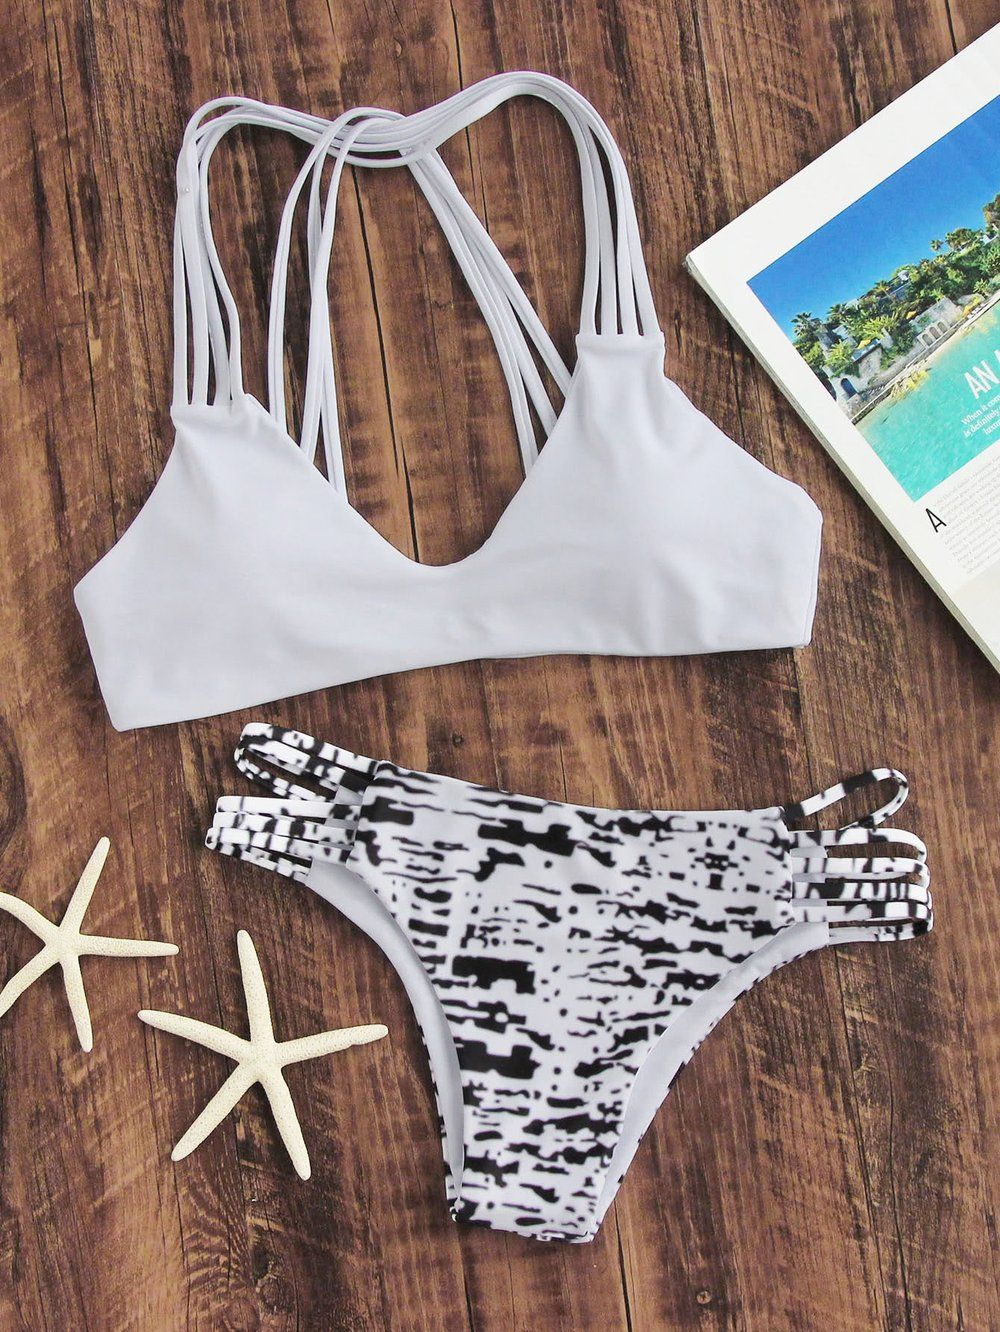 Color printing bu - Tie Dye Ladder Cutout Strappy Bikini Set Material Polyester Color White Top Push